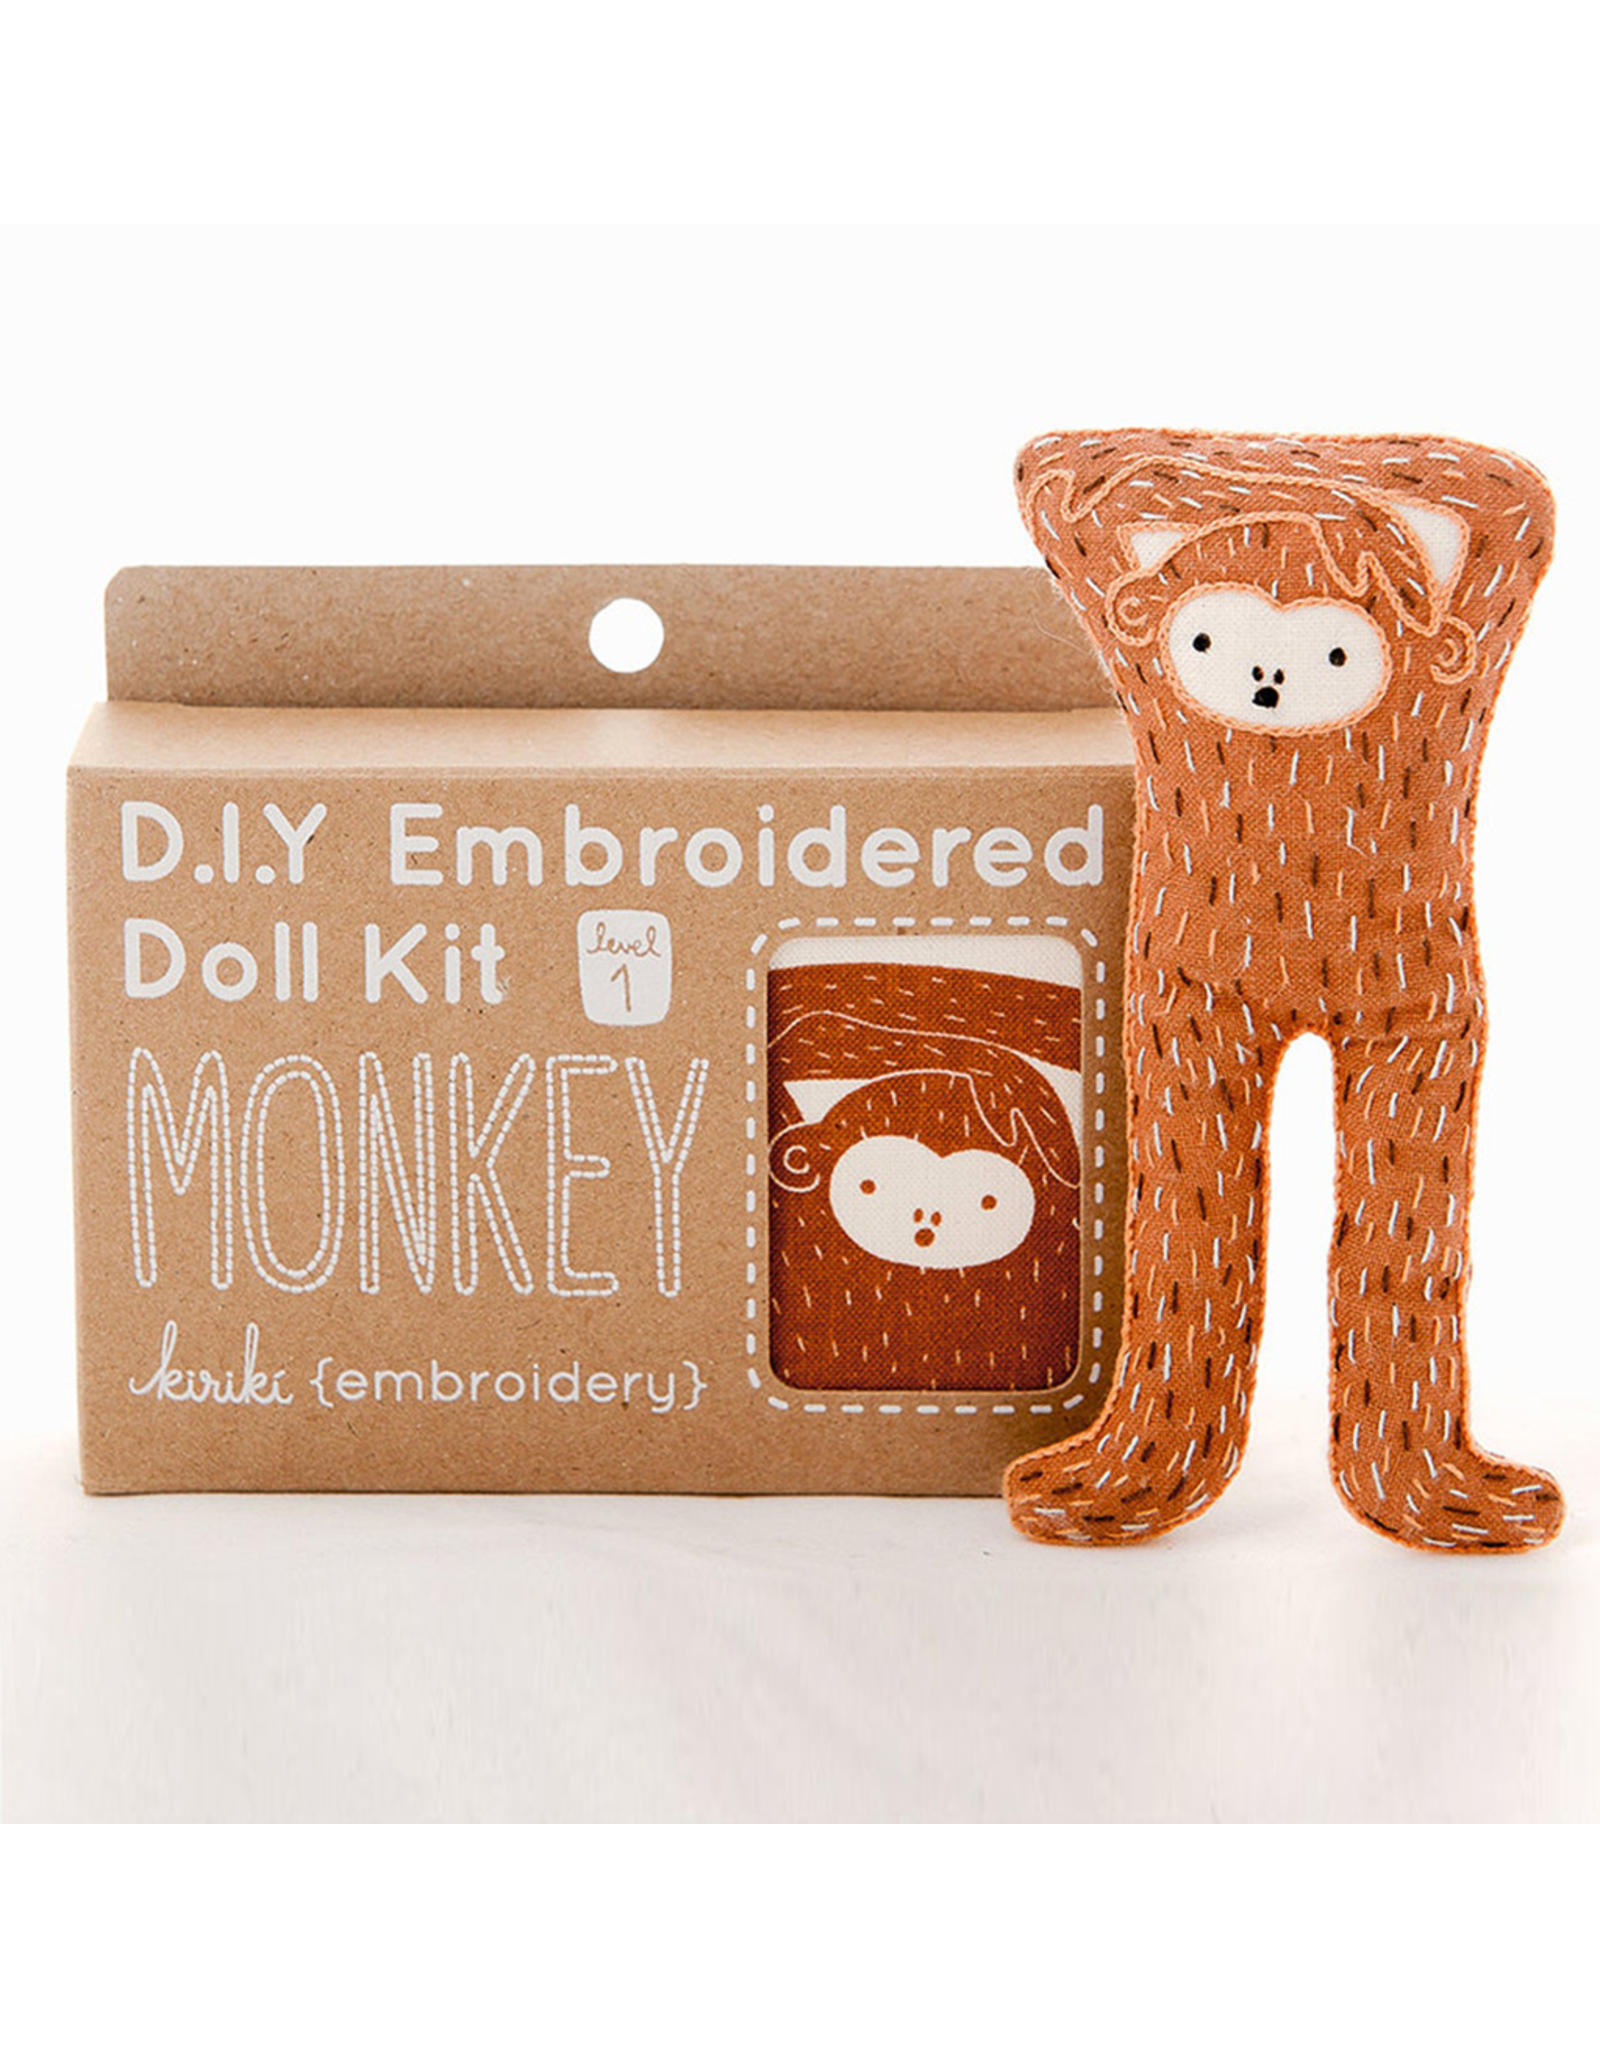 Embroidery Kit - Monkey